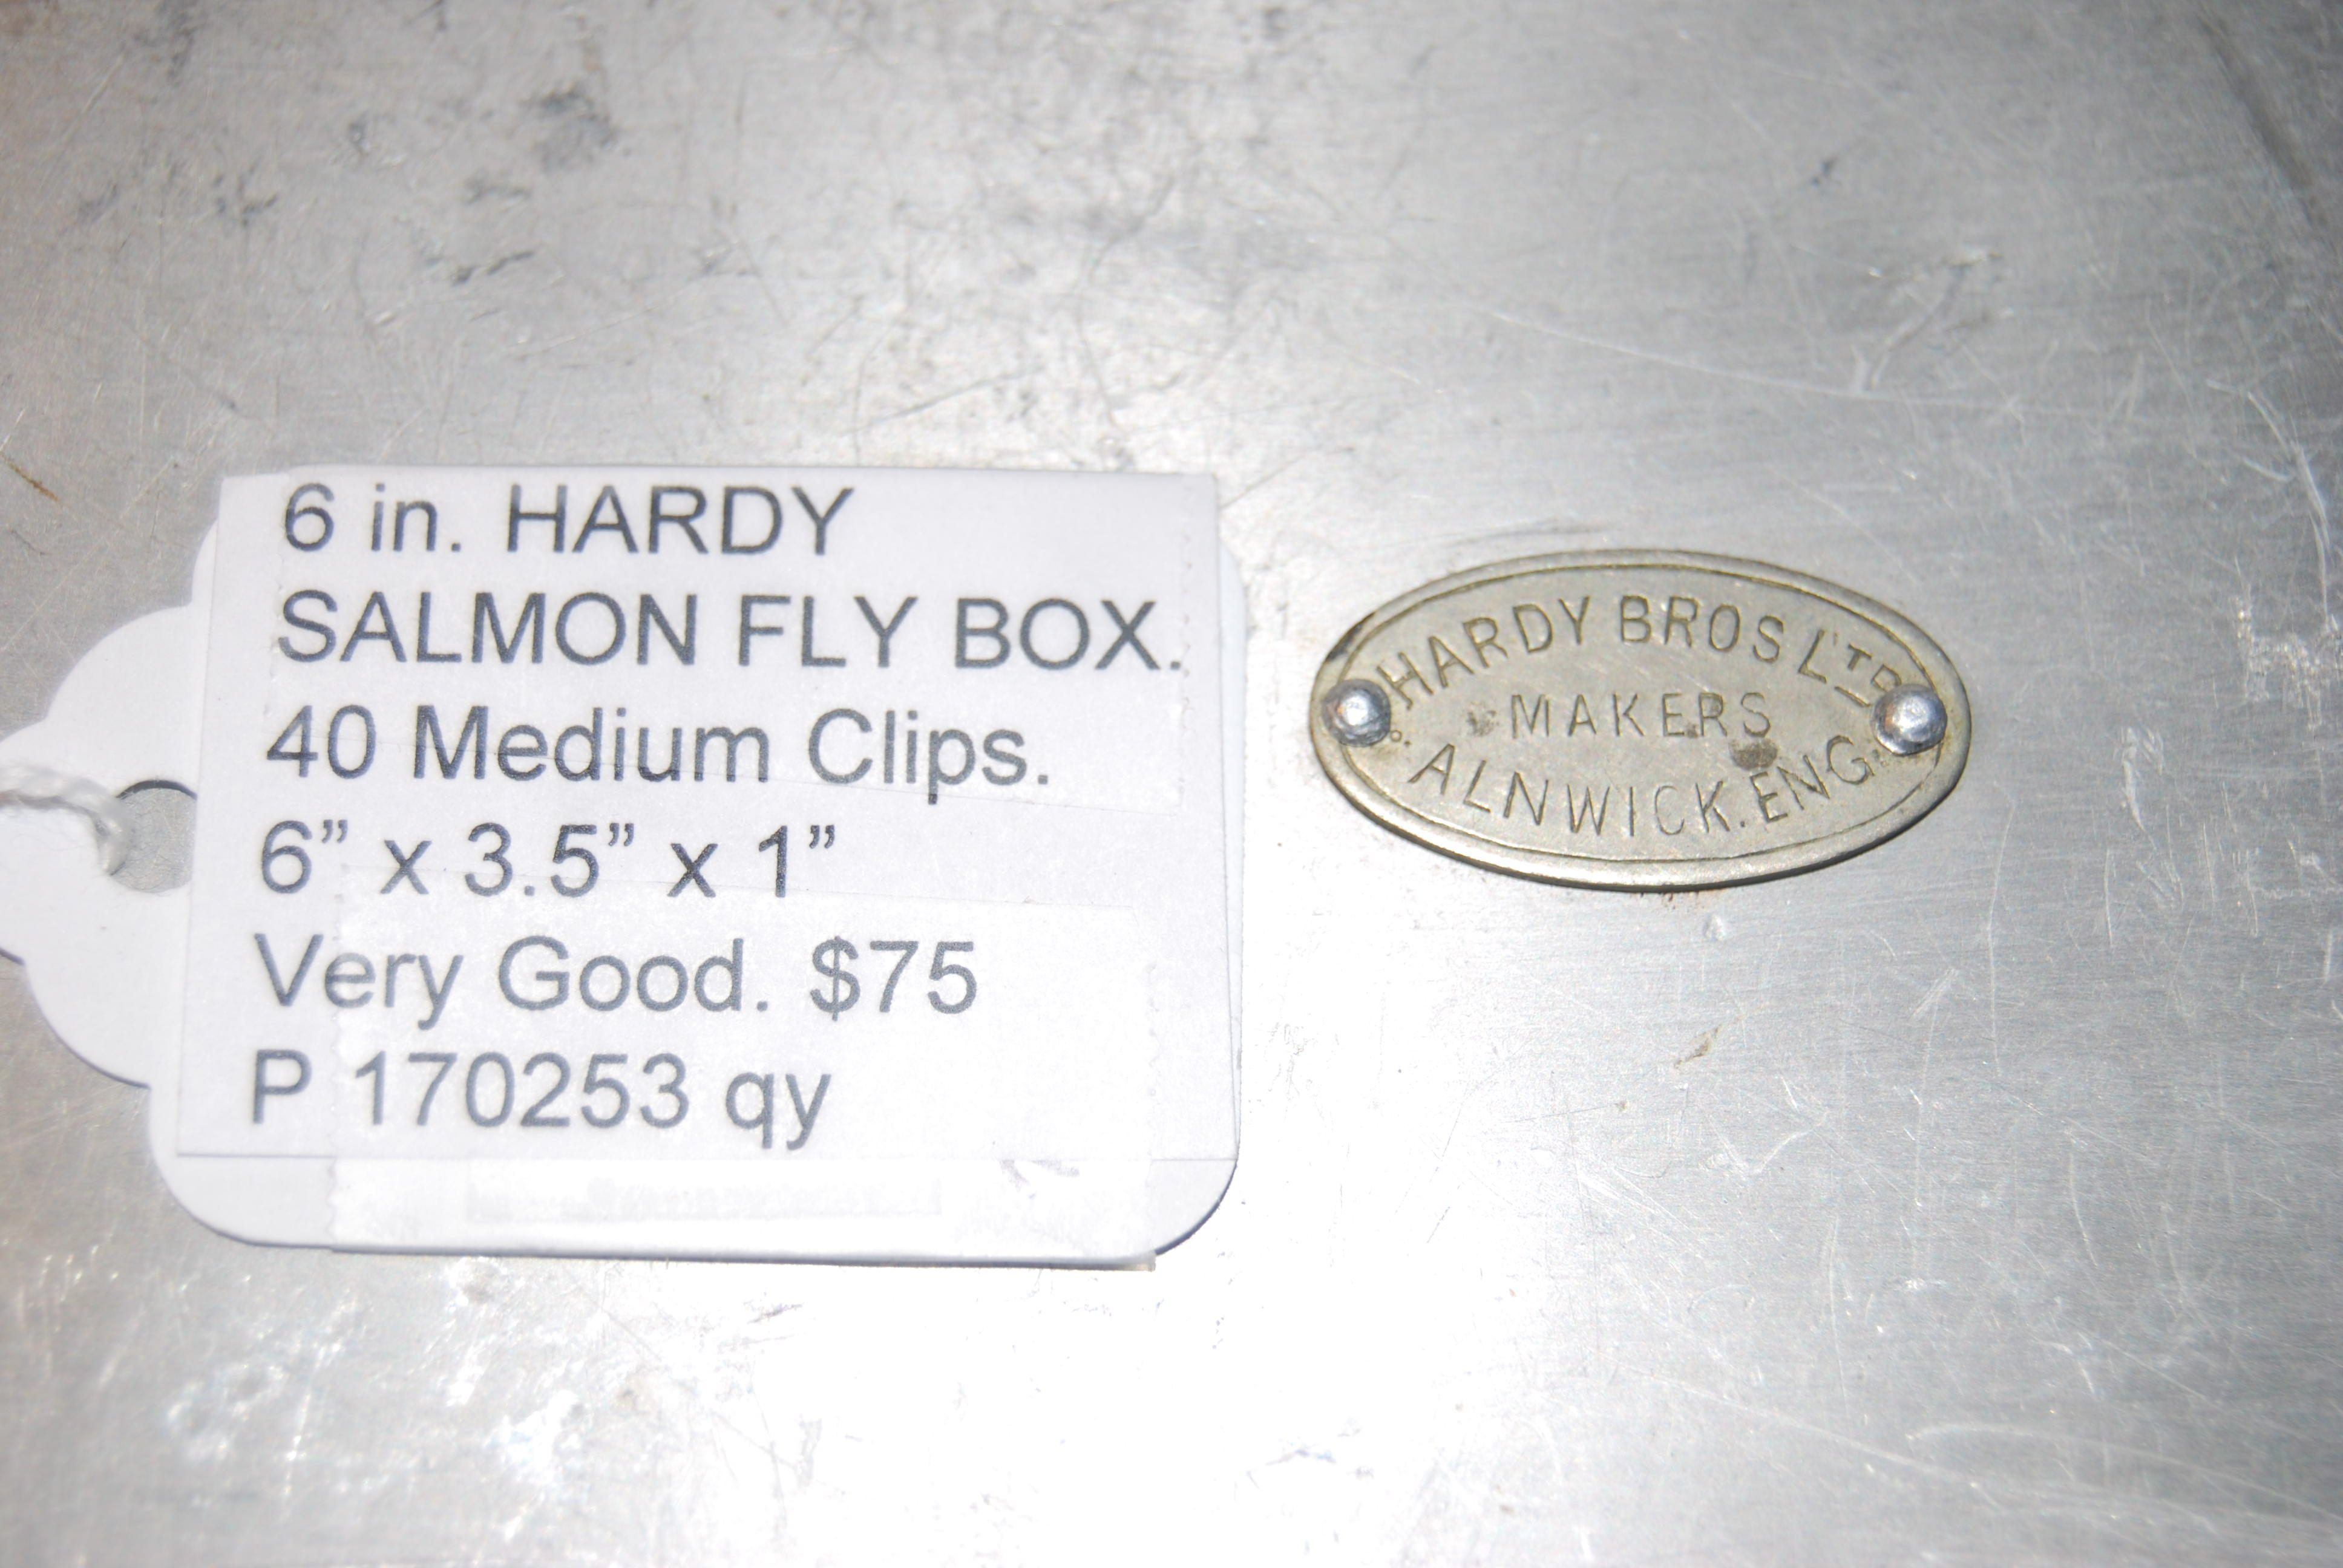 "Image for HARDY SALMON FLY BOX.  Marked on lid with oval Medallion: ""Hardy Bros. Ltd. / Makers / Alnwick, Eng.""   6 in. x 3.5 in. x 5/8 in. With 40 Medium Clips."